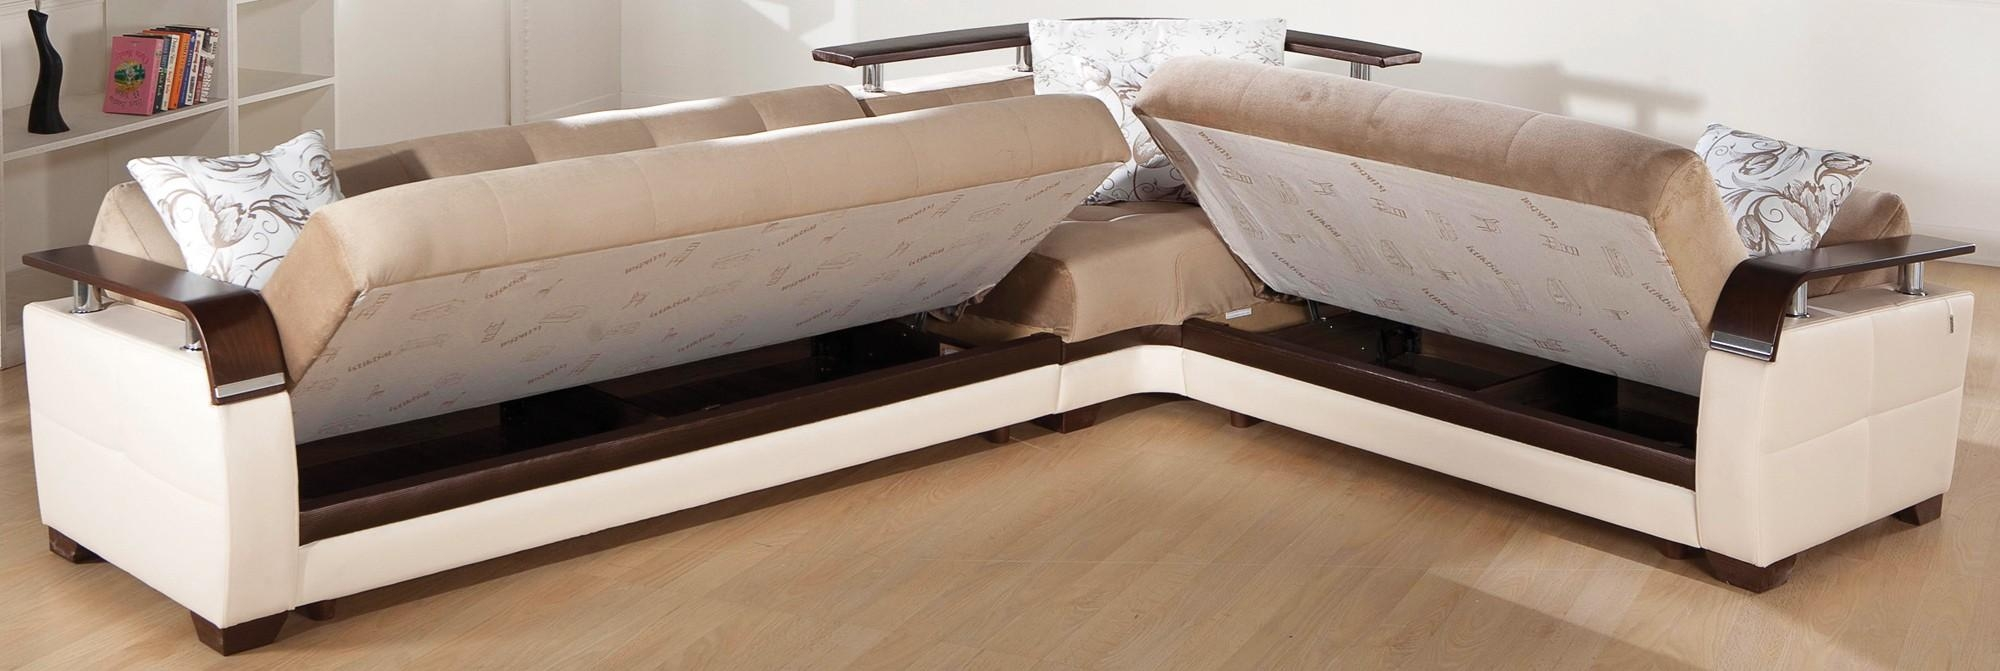 Awesome Sectional Sleeper Sofas Bed Ideas – Sectional Sleeper in Chenille Sleeper Sofas